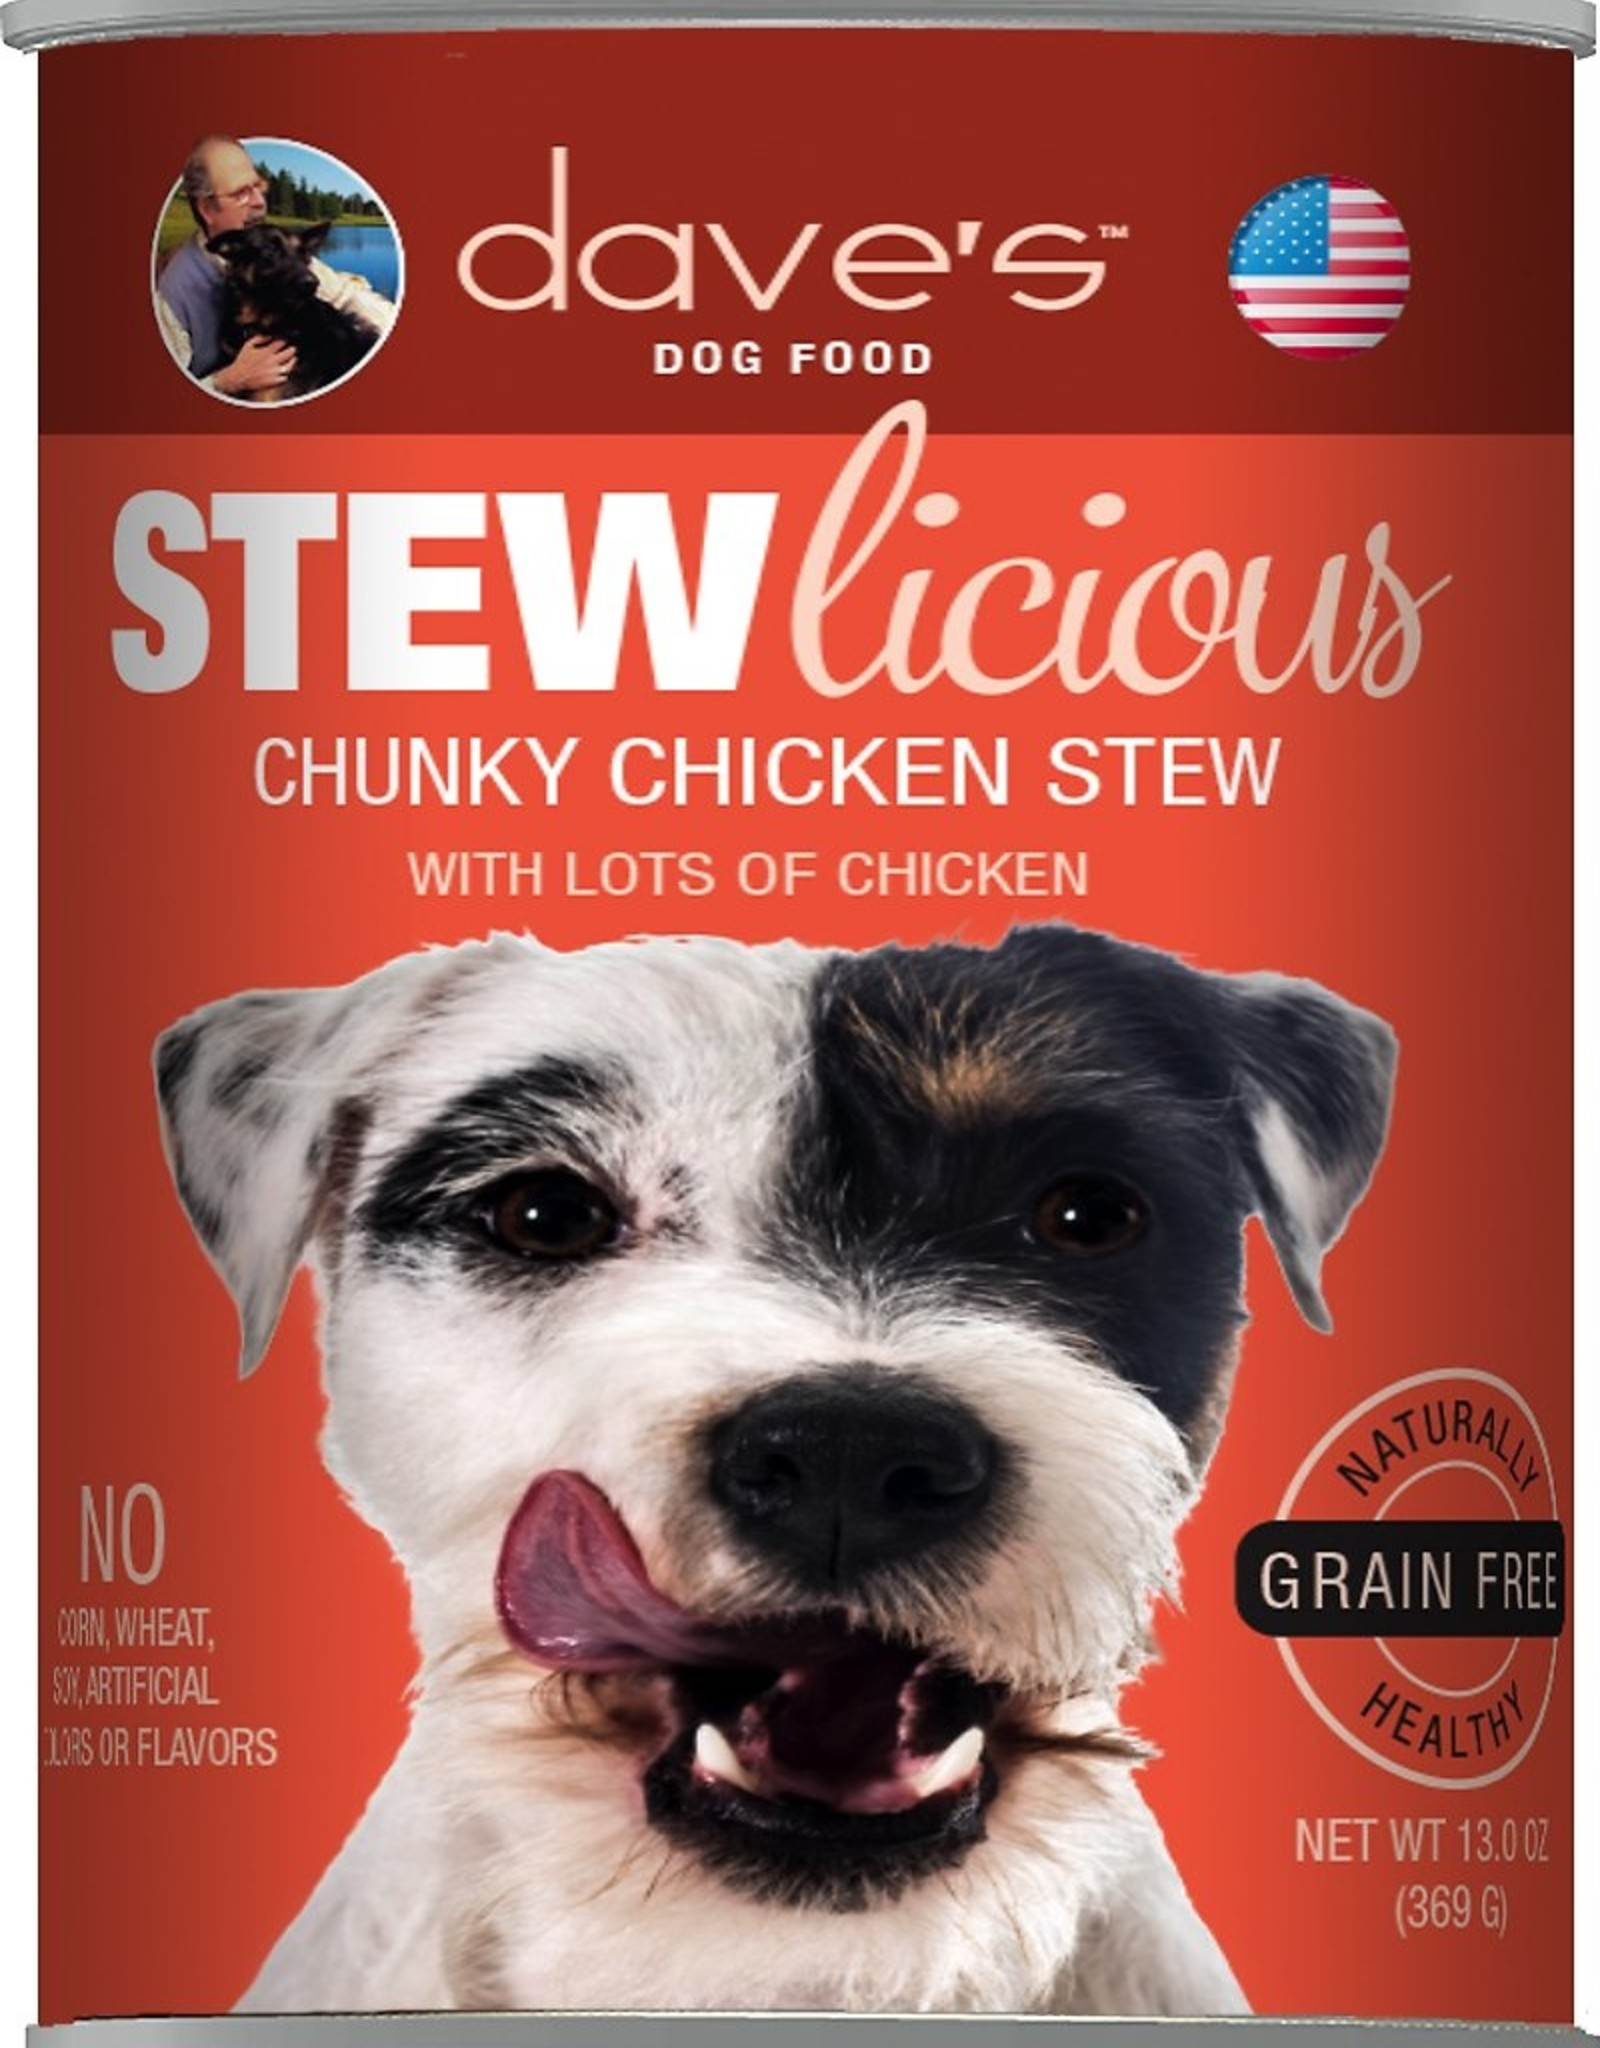 Daves Pet Food Dog Chucky Chicken Stew - Grain-Free 13oz